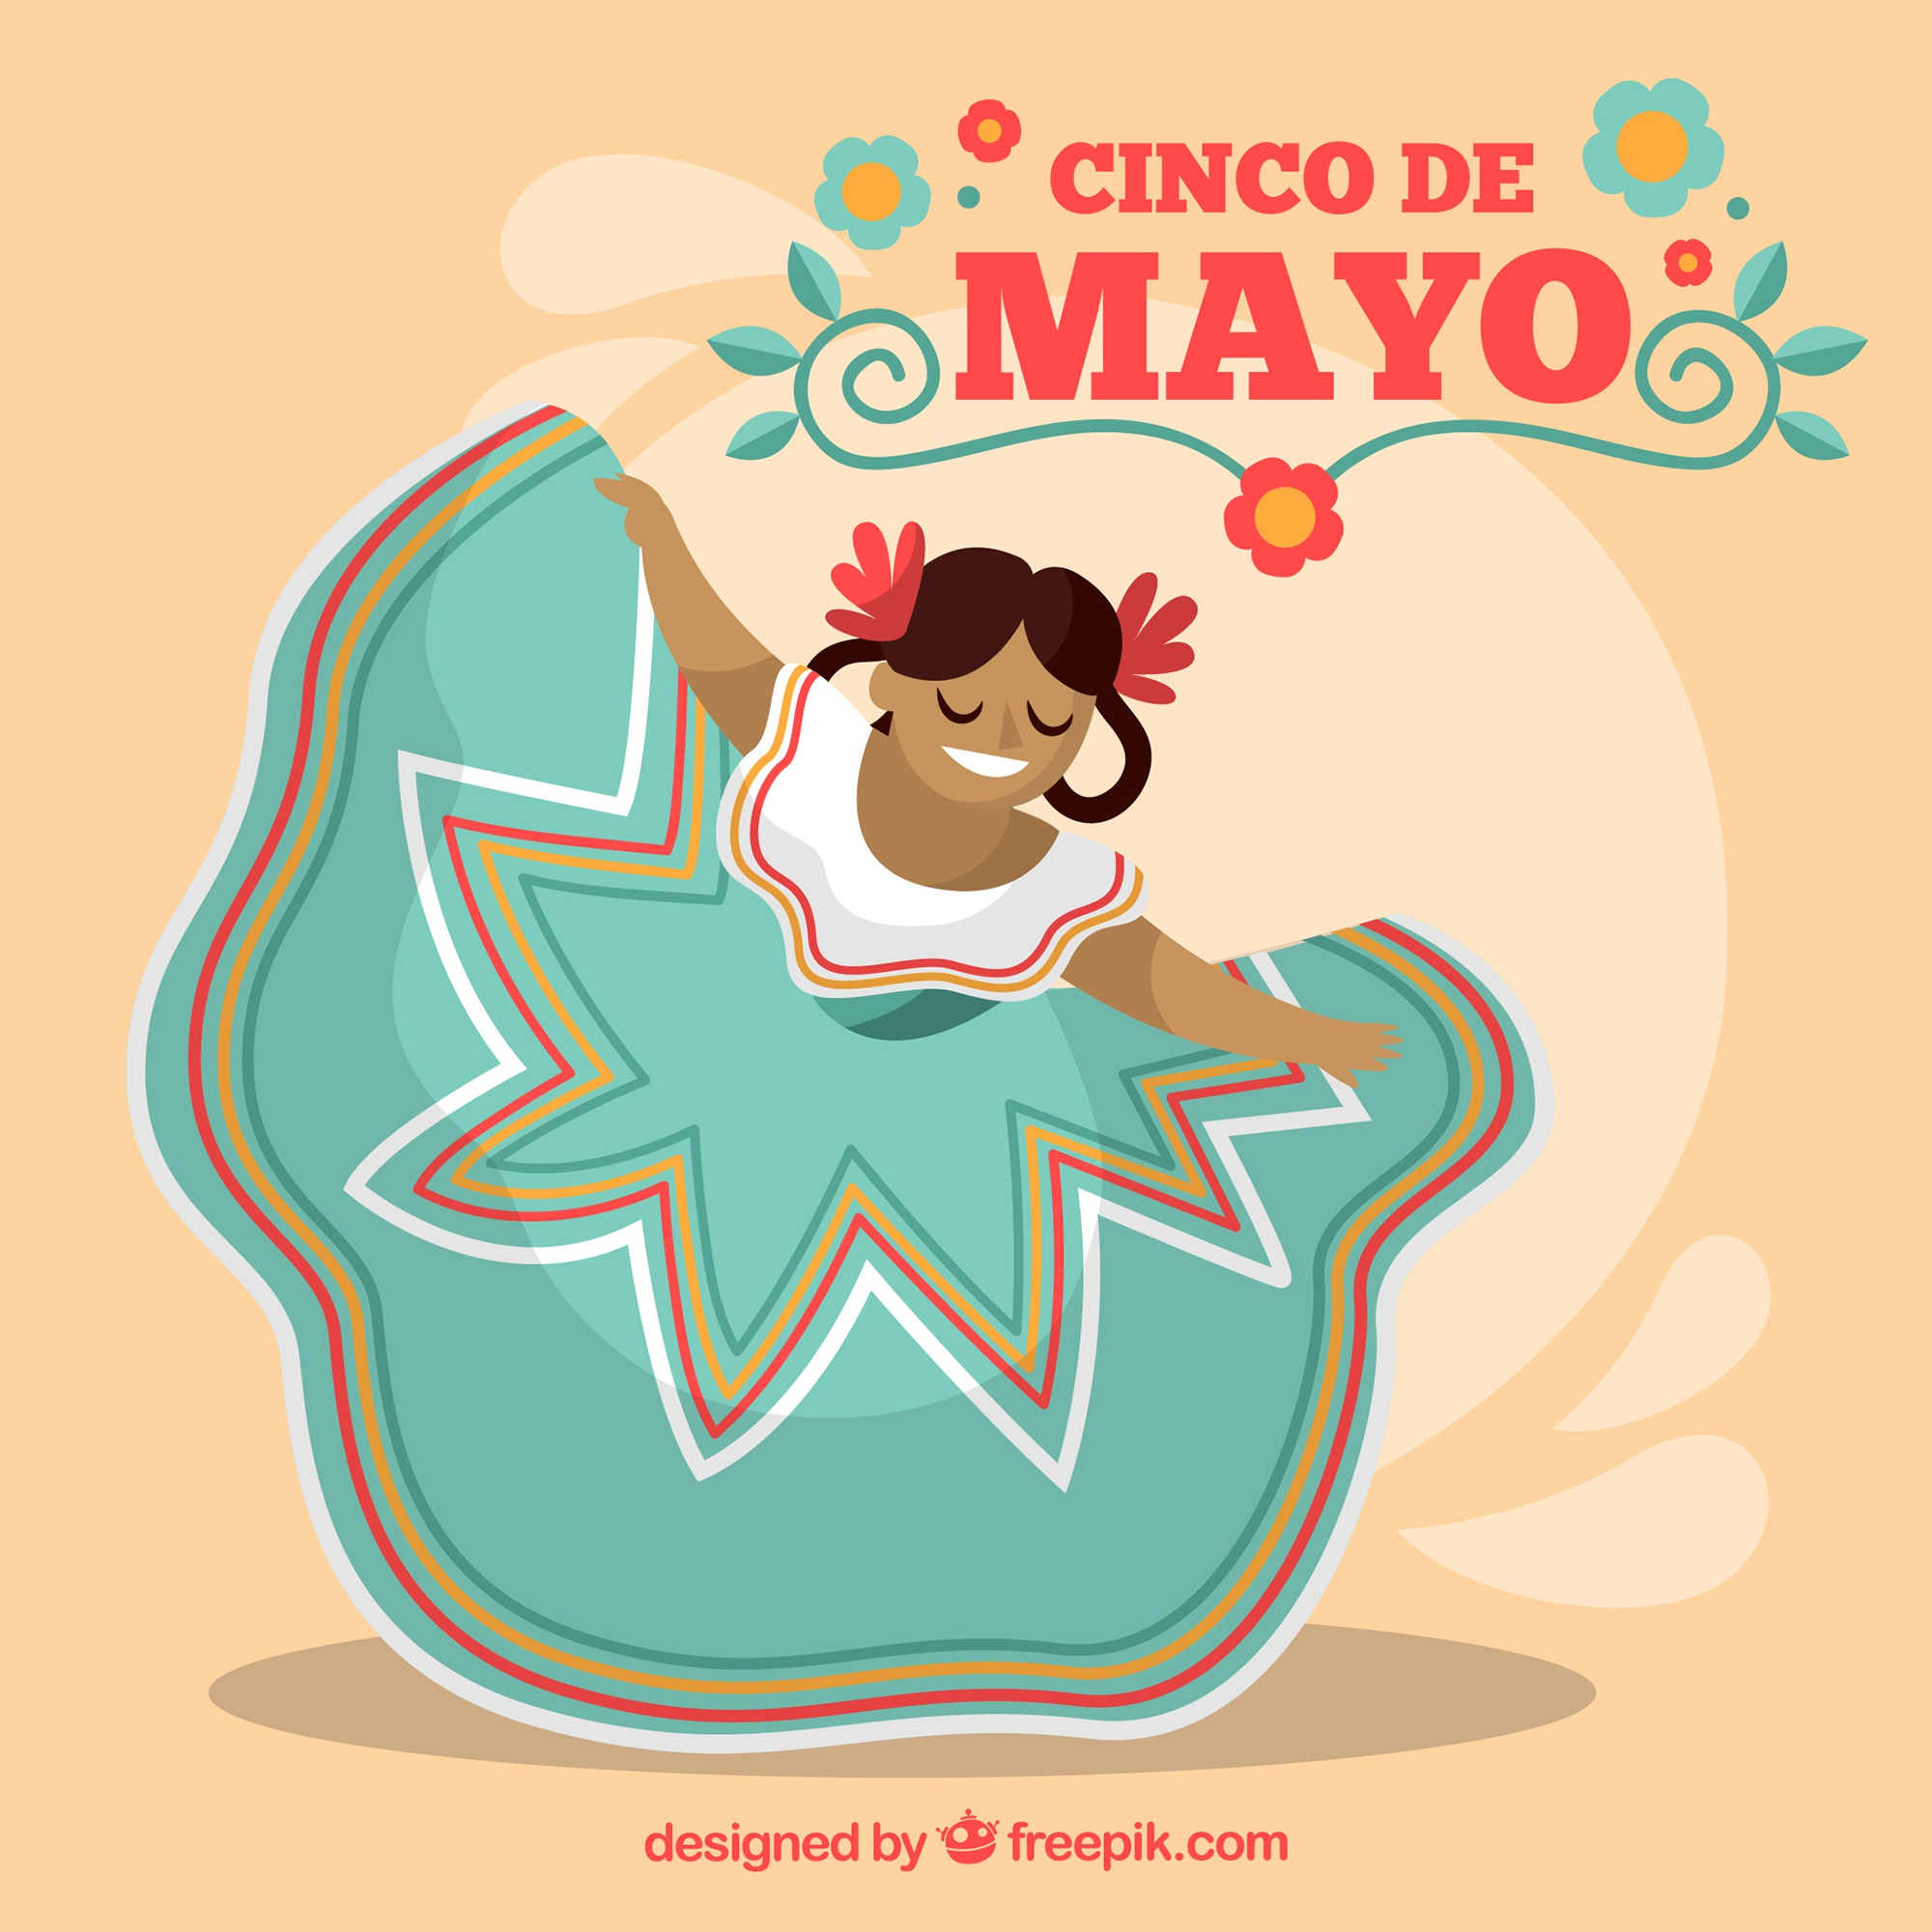 Cinco de mayo background with woman dancing